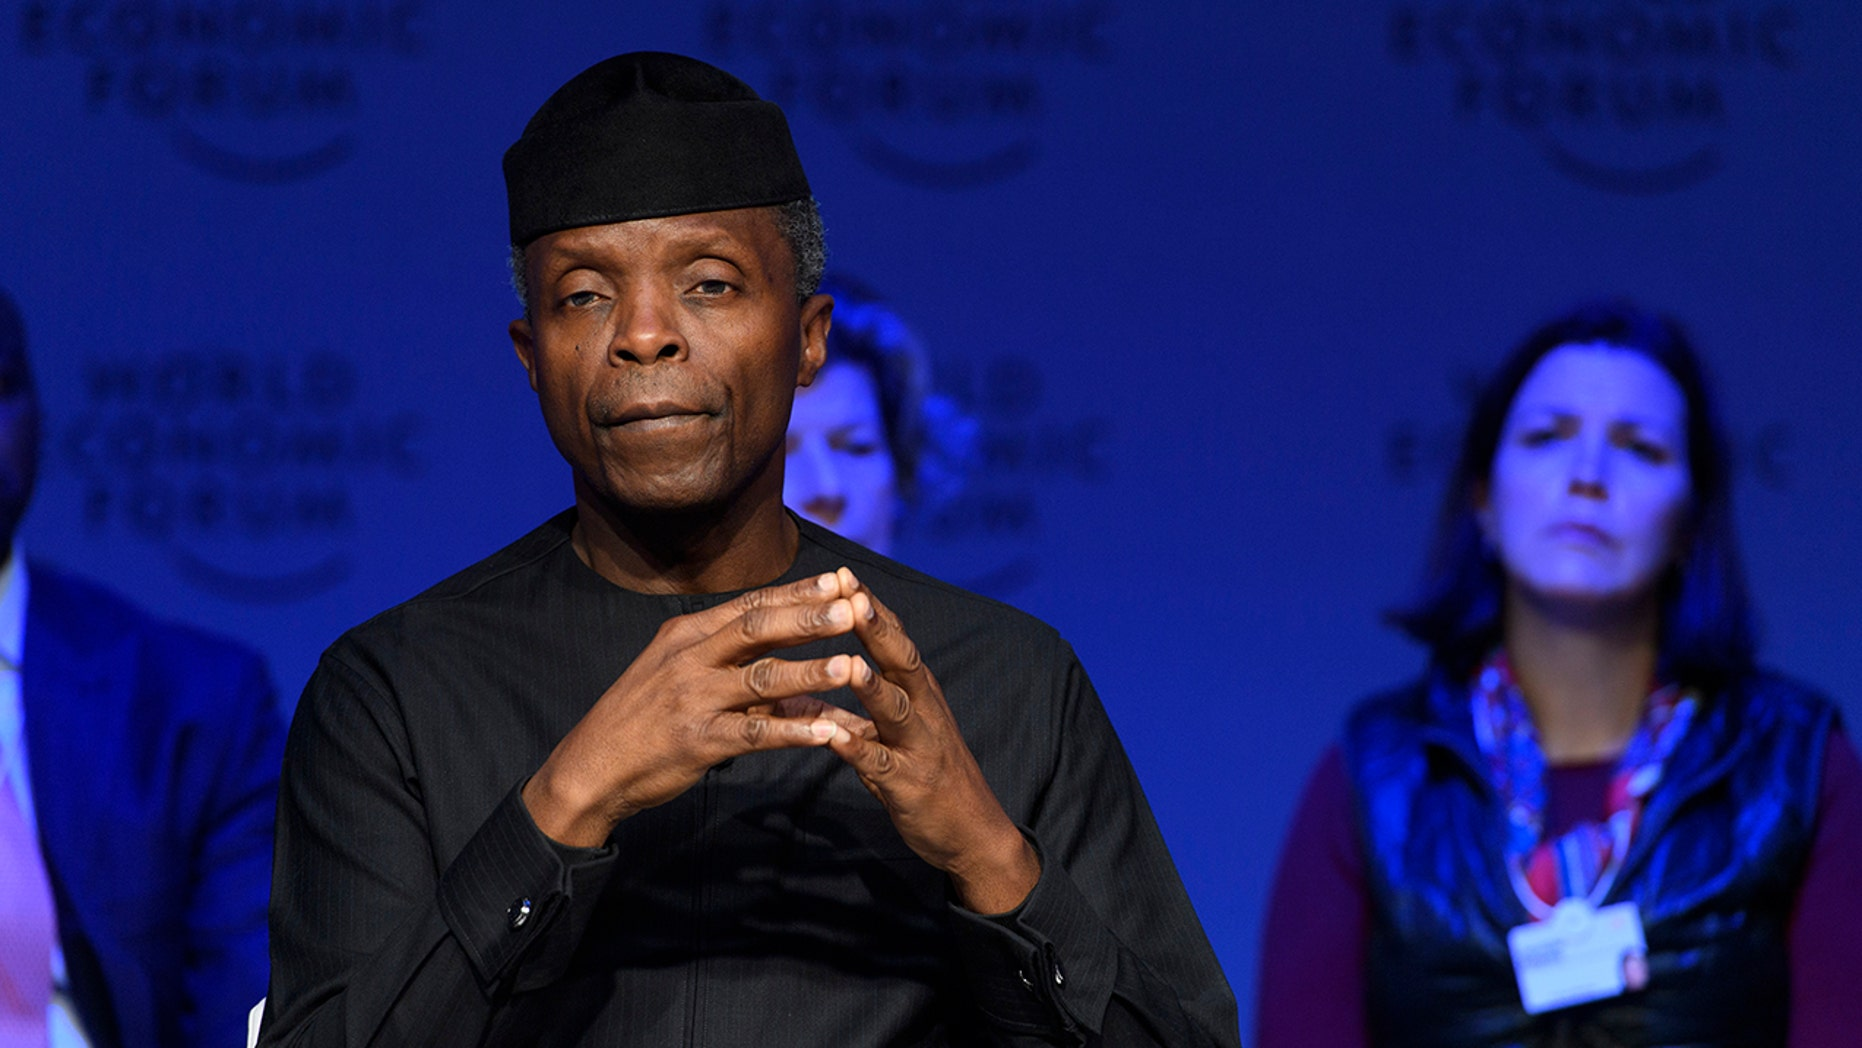 Yemi Osinbajo, Vice-President of Nigeria, attends a panel session during the Annual Meeting of the World Economic Forum, WEF, in Davos, Switzerland, Wednesday, Jan. 24, 2018. (Laurent Gillieron/Keystone via AP)